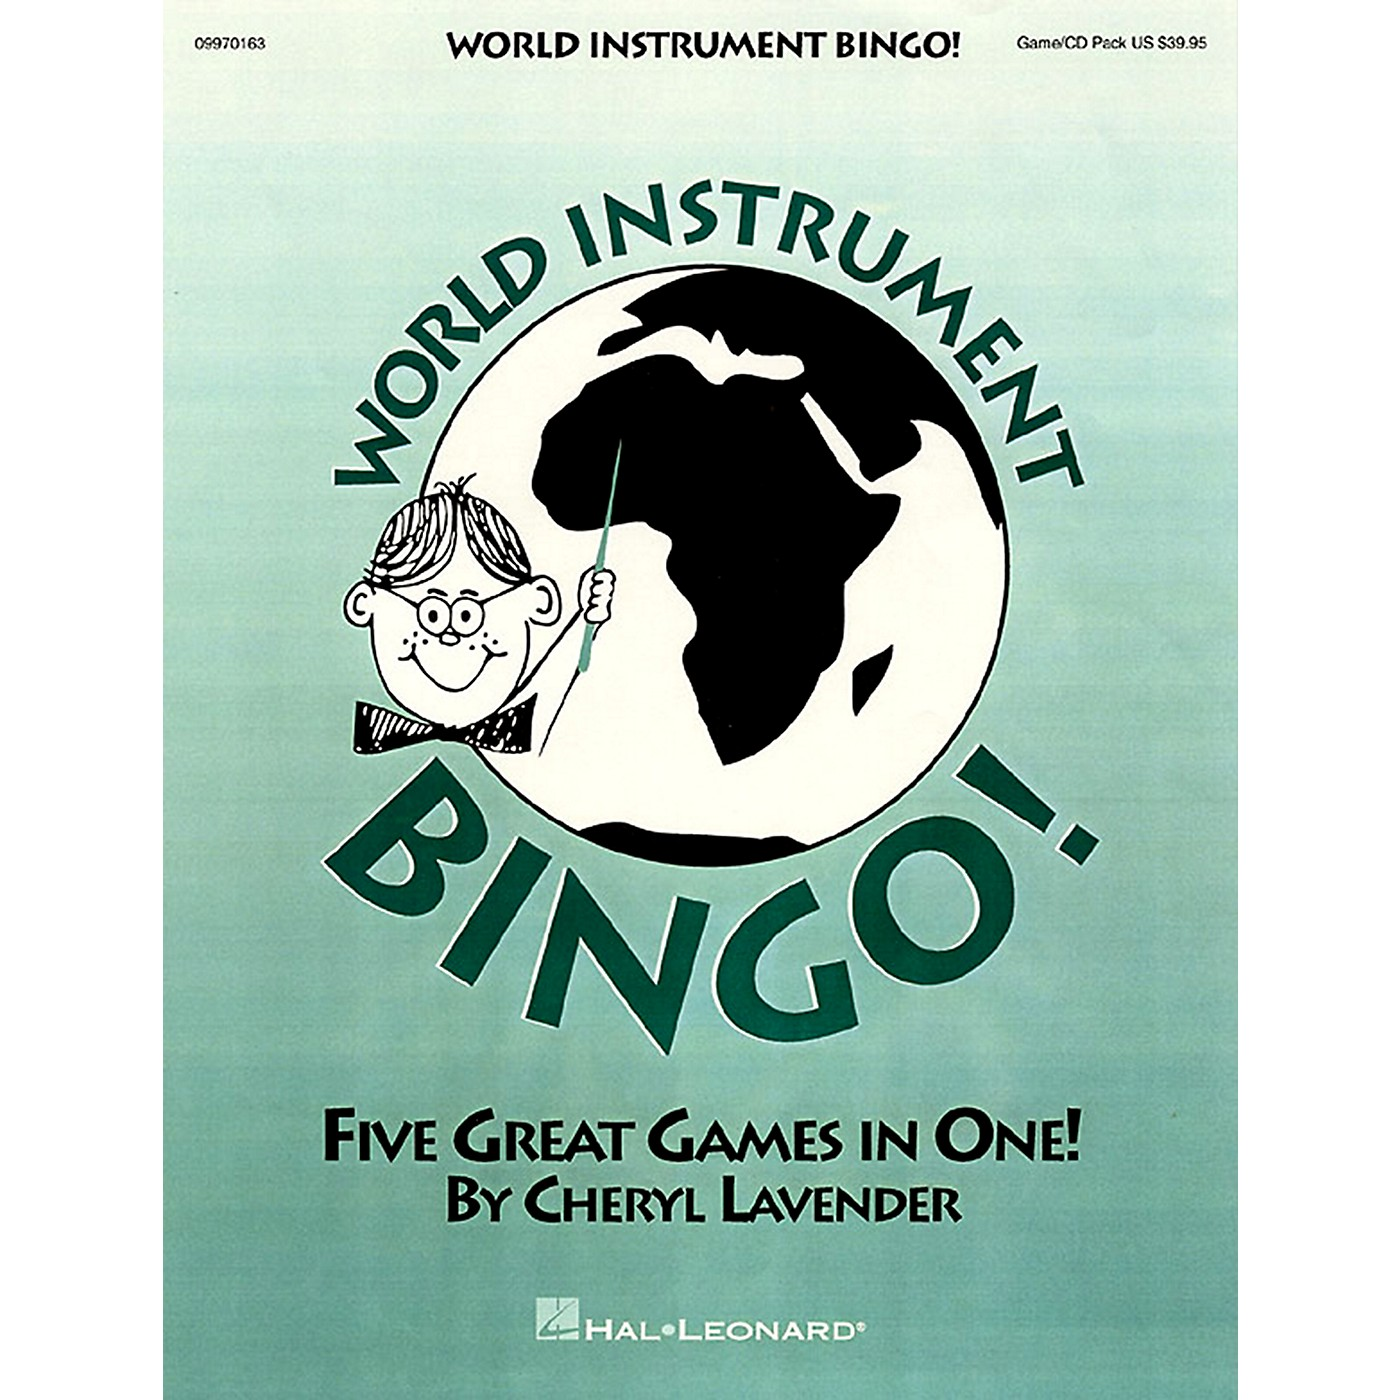 Hal Leonard World Instrument Bingo! (Game/Online Audio) thumbnail